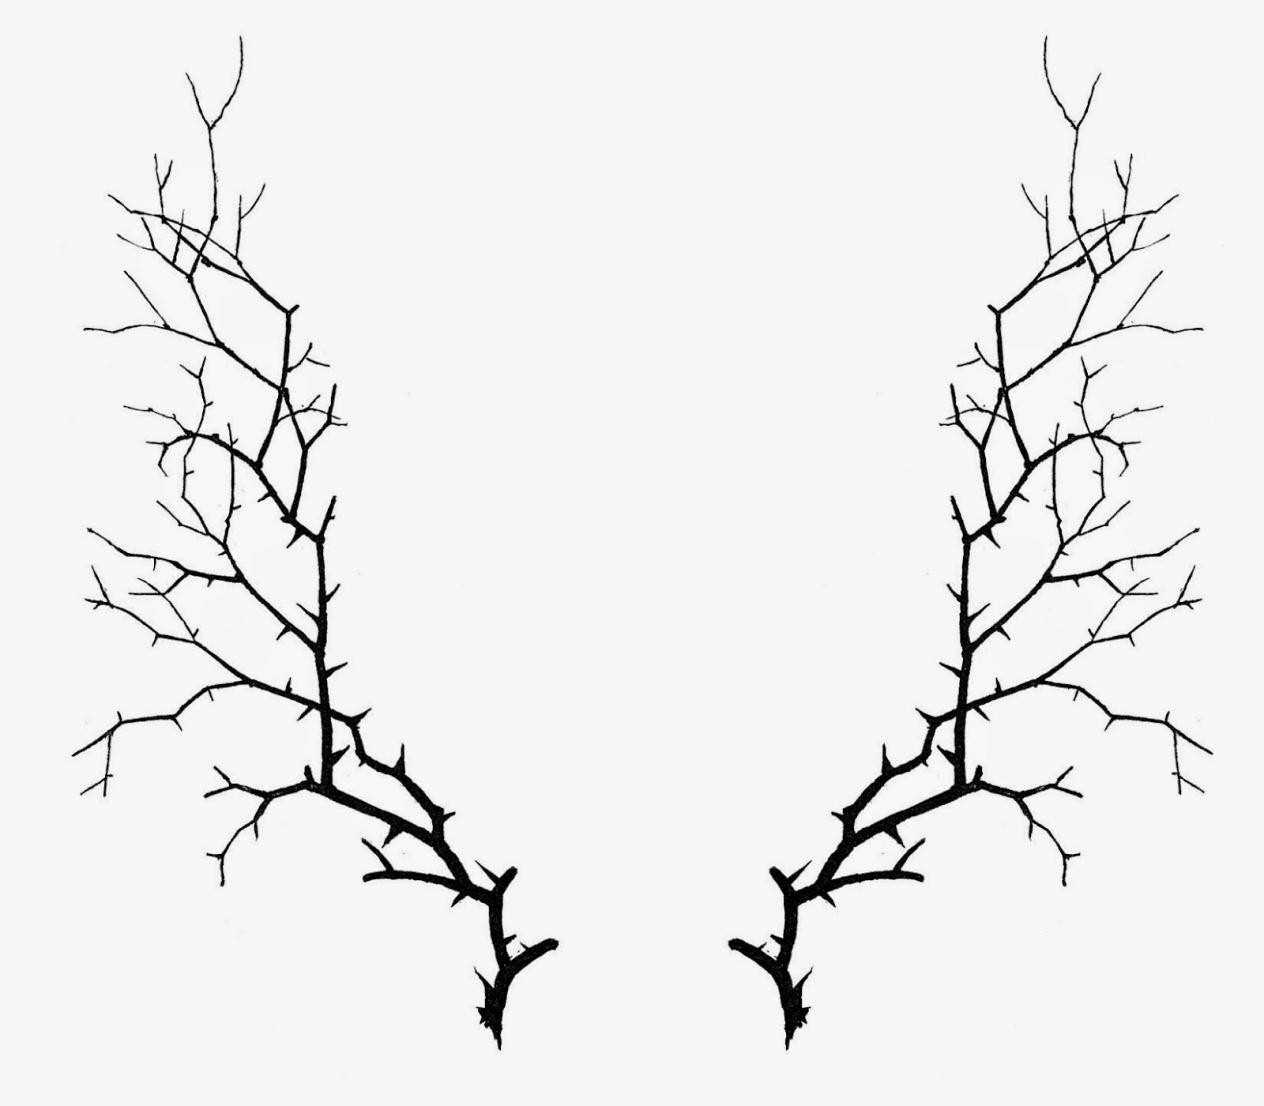 1264x1106 Vine Drawing Thorns For Free Download